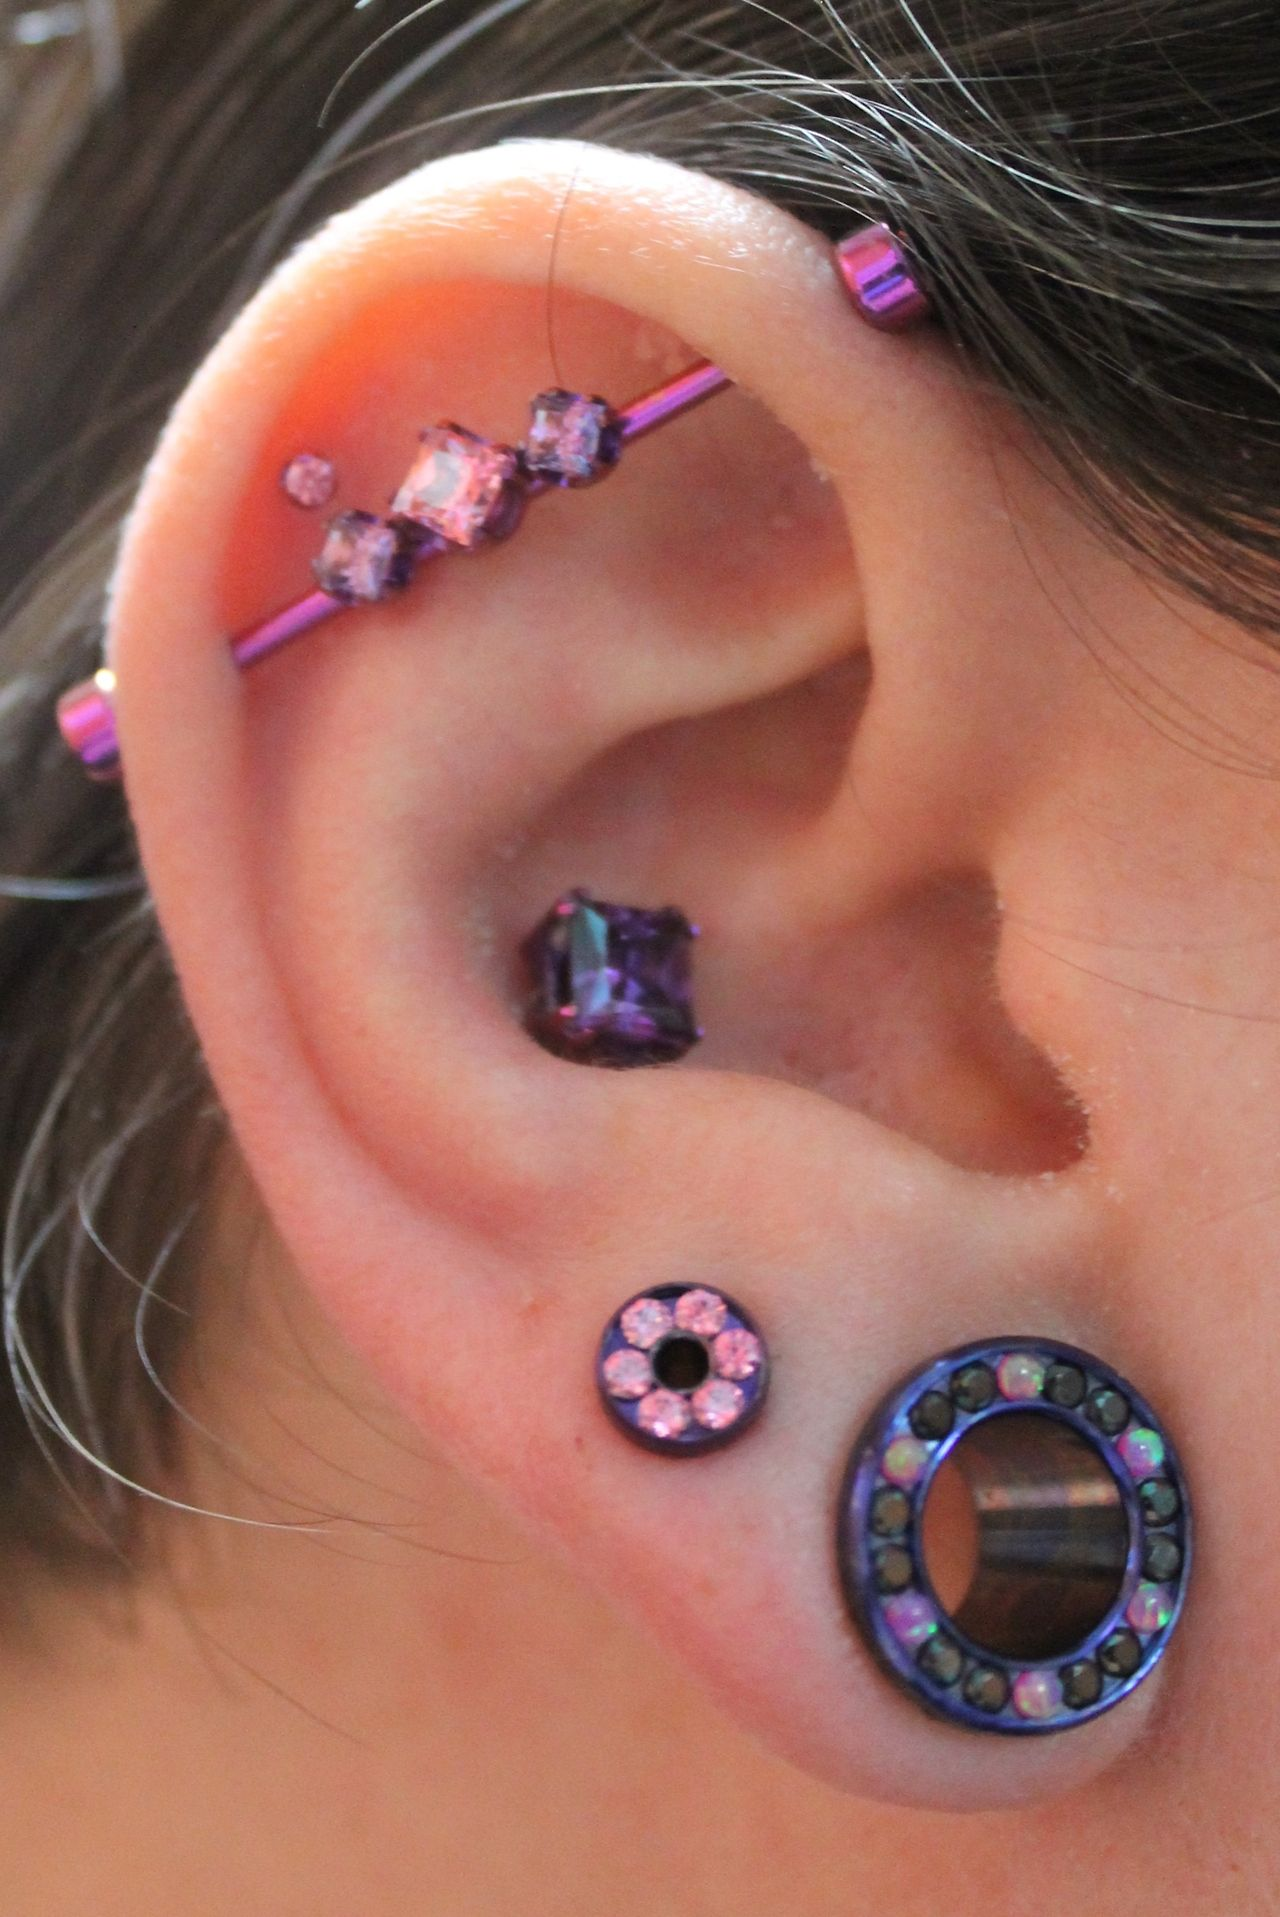 Nose and ear piercing  All jewelry by Anatometal Beautiful I am going to do this with my